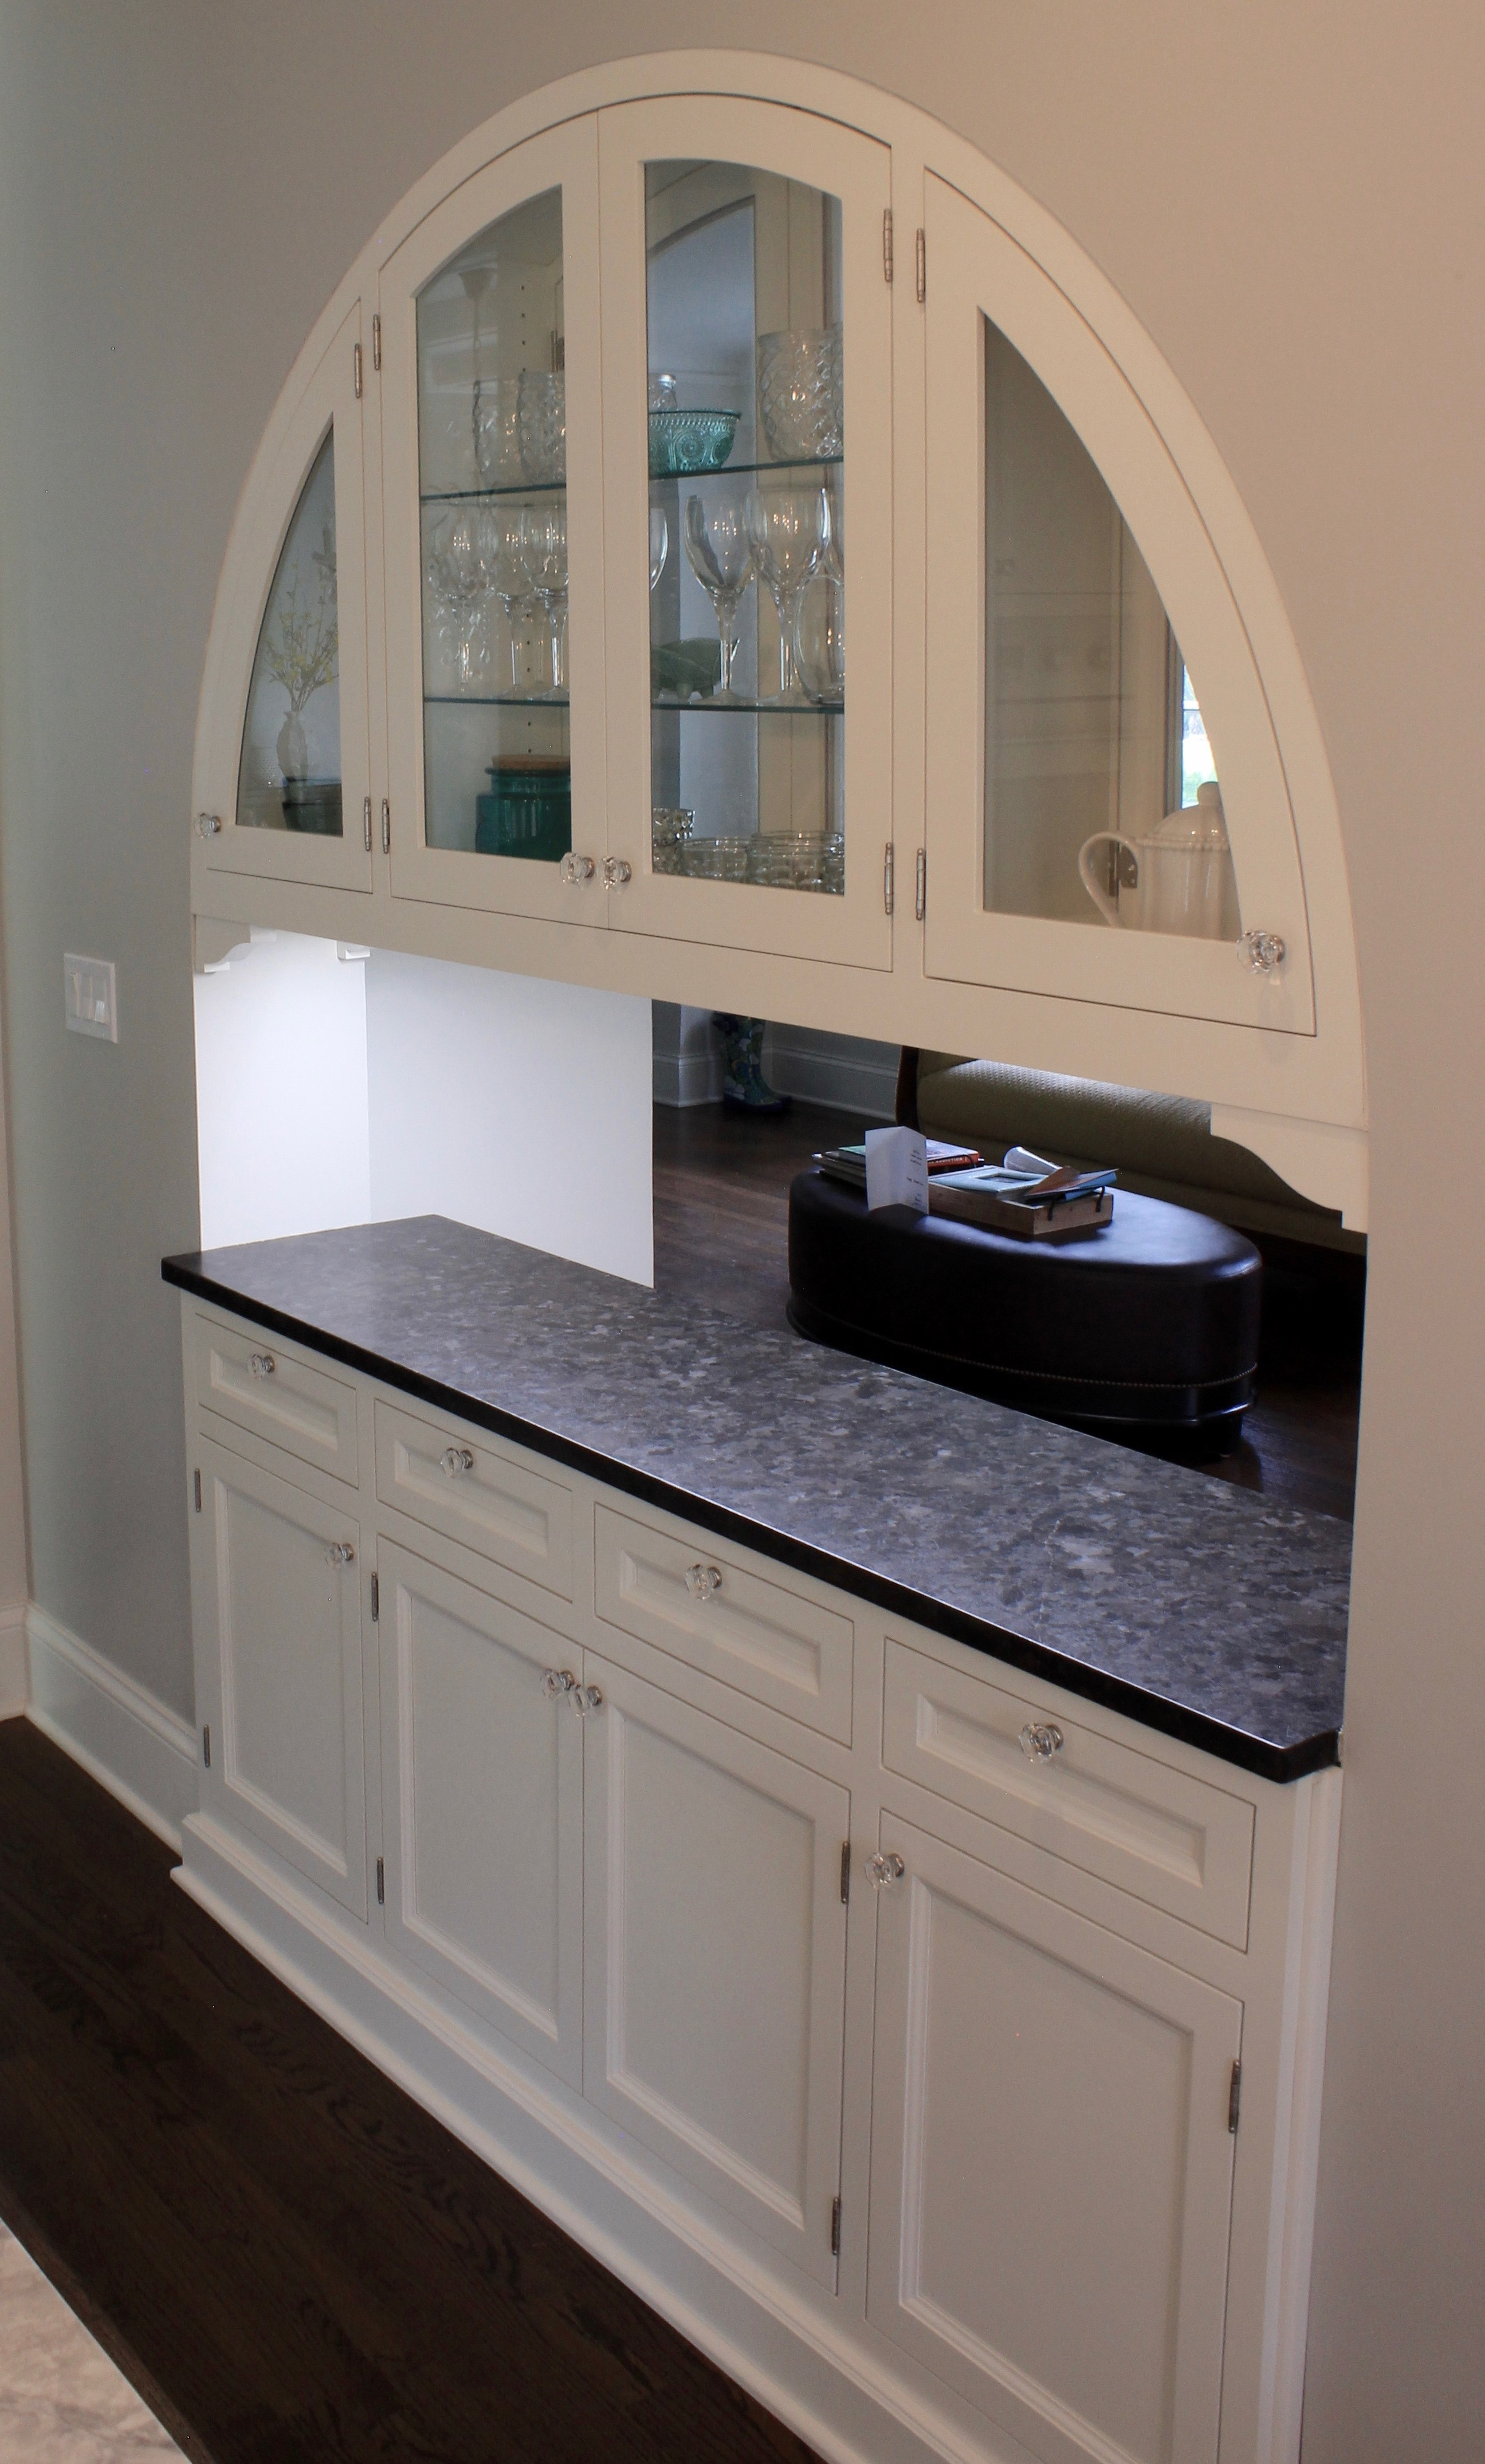 amish kitchen cabinets chicago window valance pictures archive custom kitchens